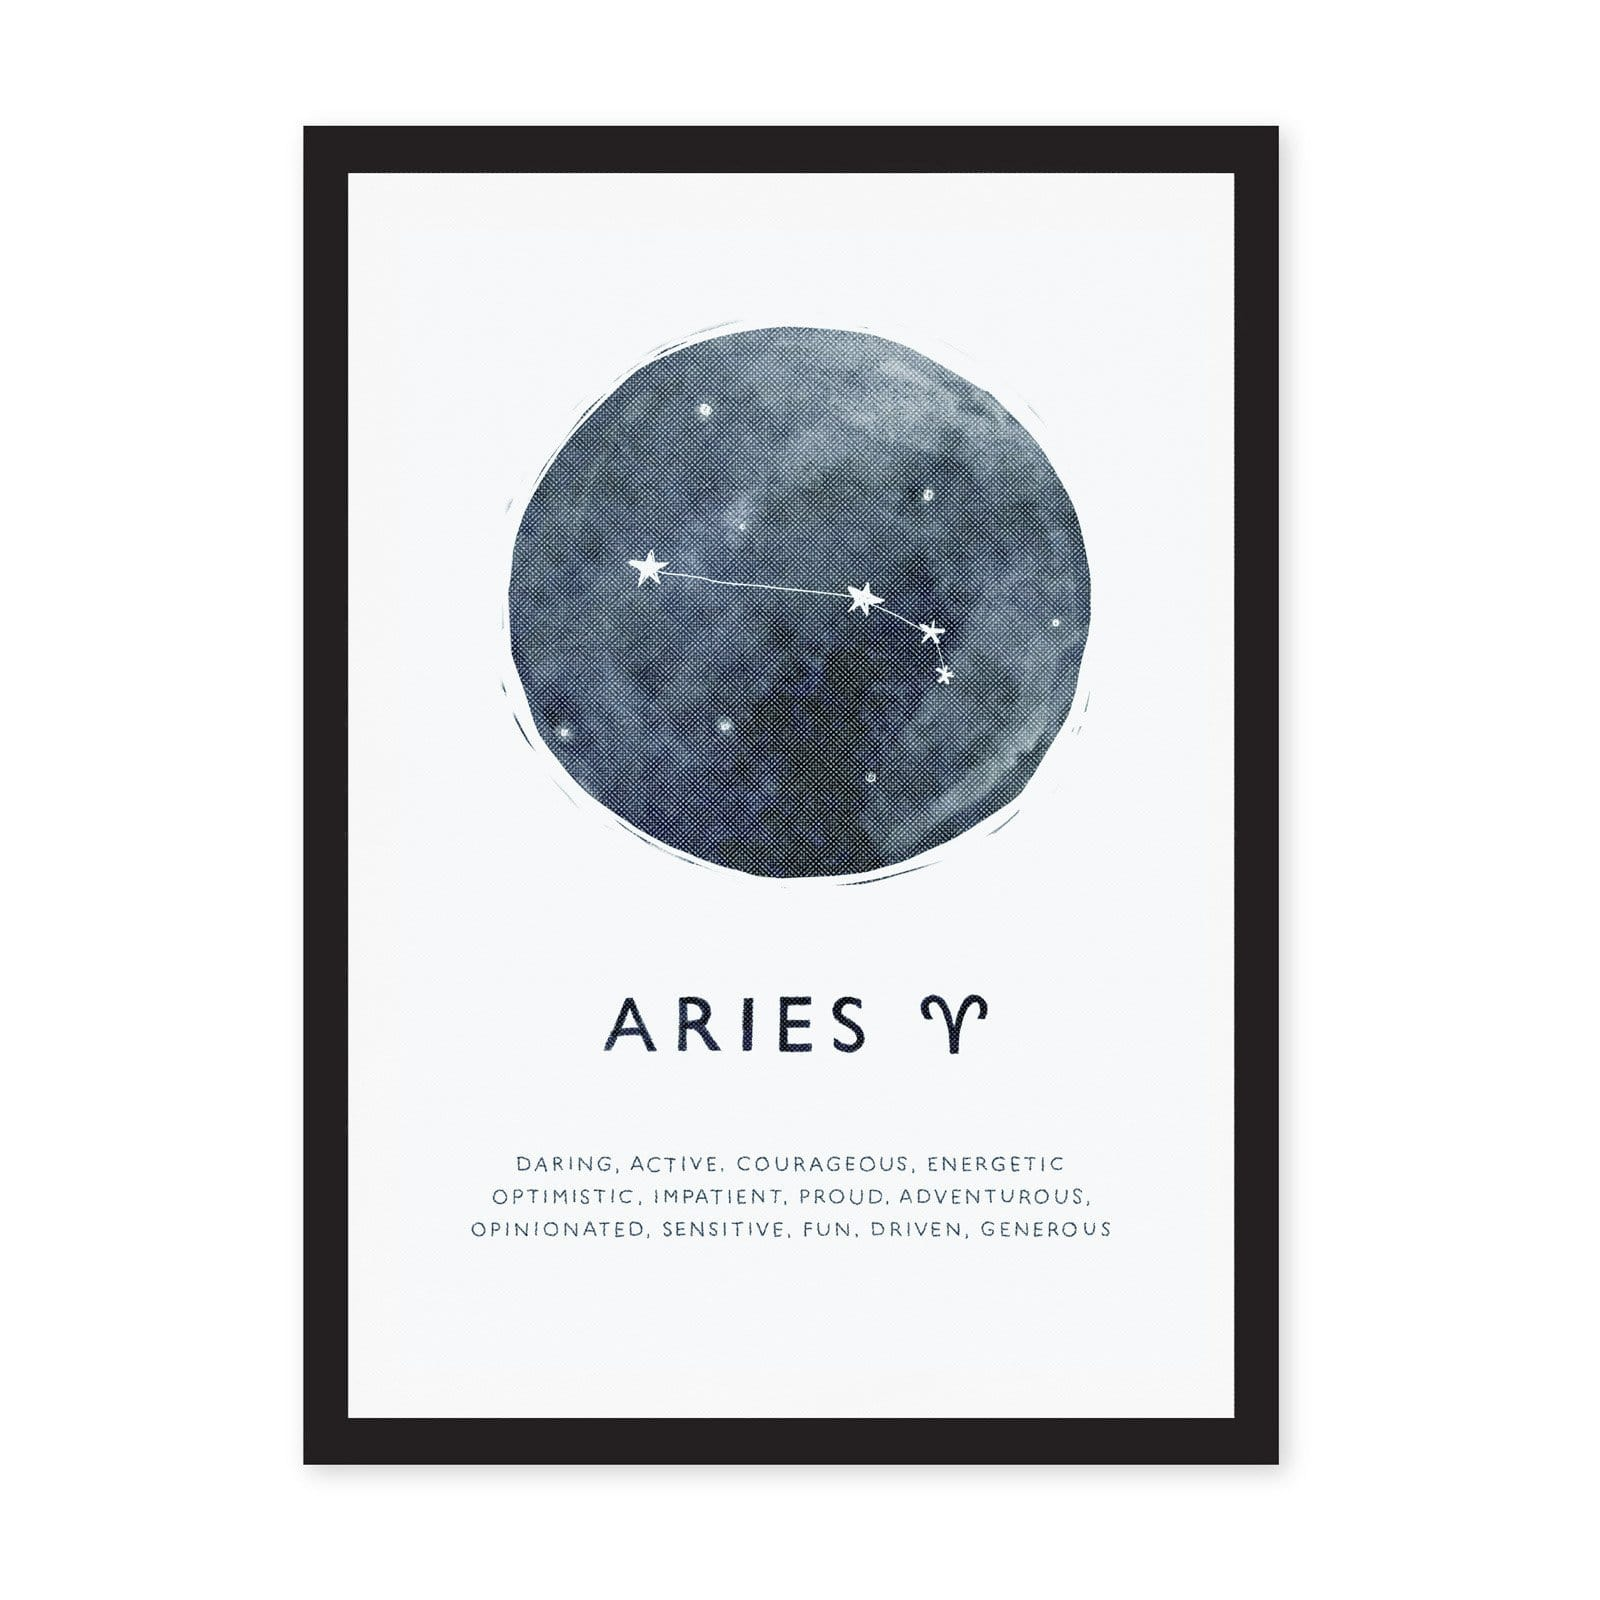 Aries star sign A4 art print with blue background and stars, with black listed words